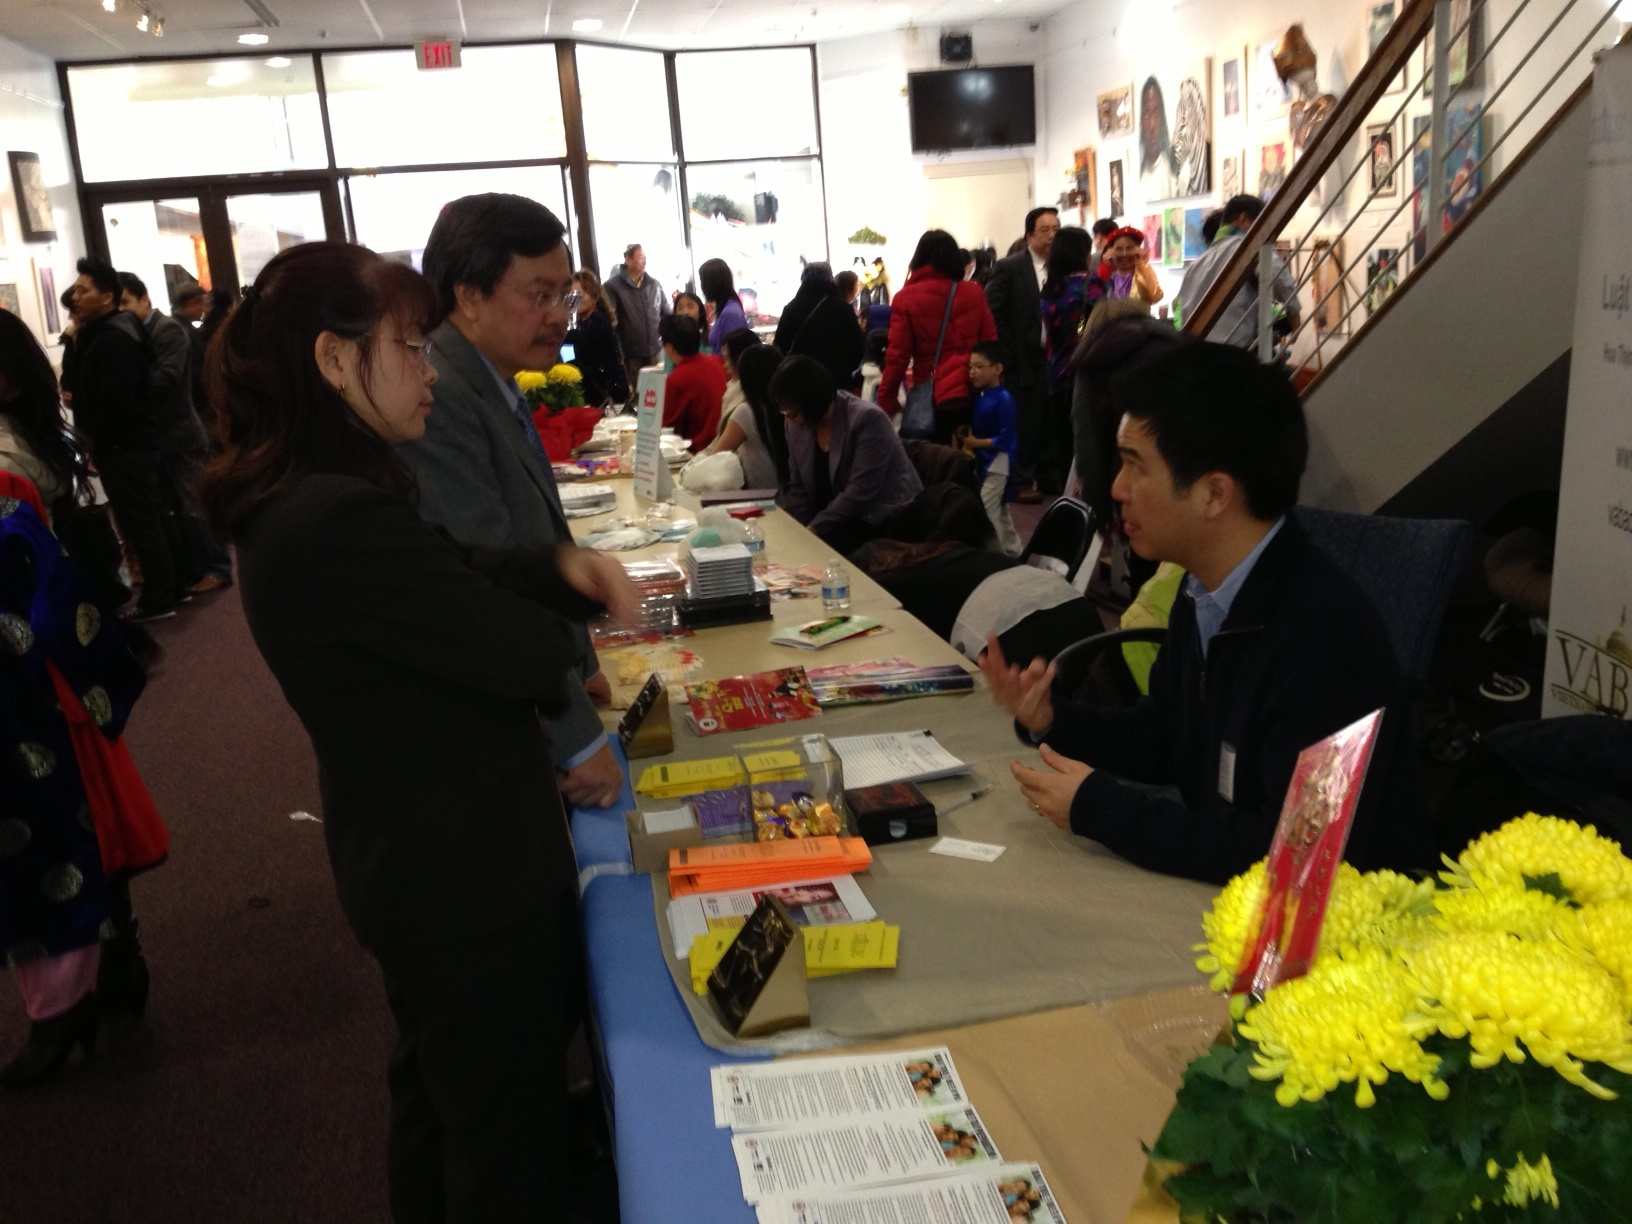 vaba dc news thank you to the association of viet se americans the viet se senior citizens association and the viet se literary and artistic club for letting